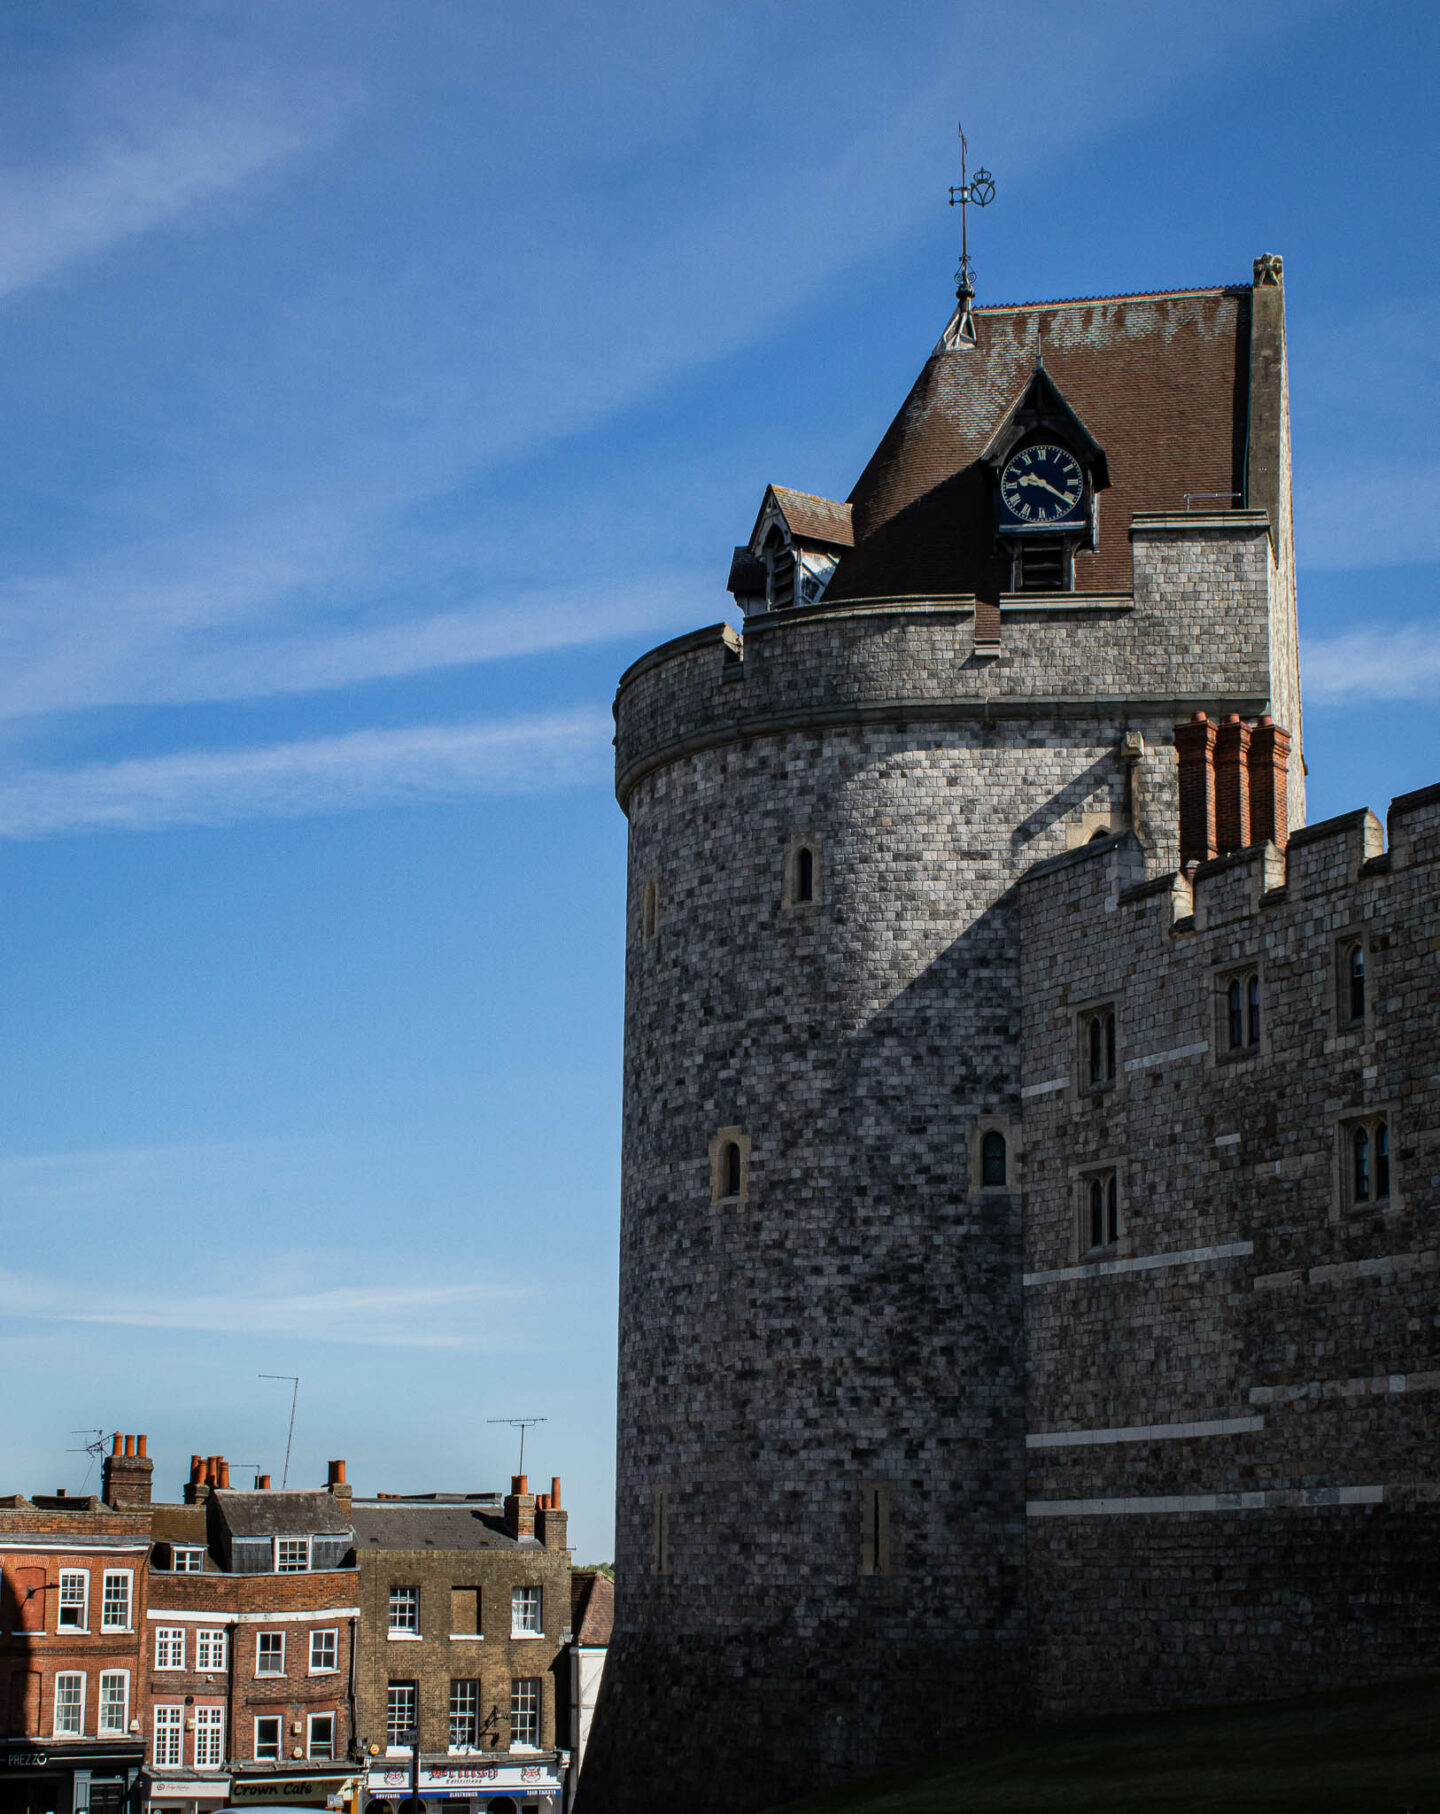 The curfew tower of Windsor Castle which looks over Thames Street - one of the prettiest streets in Windsor